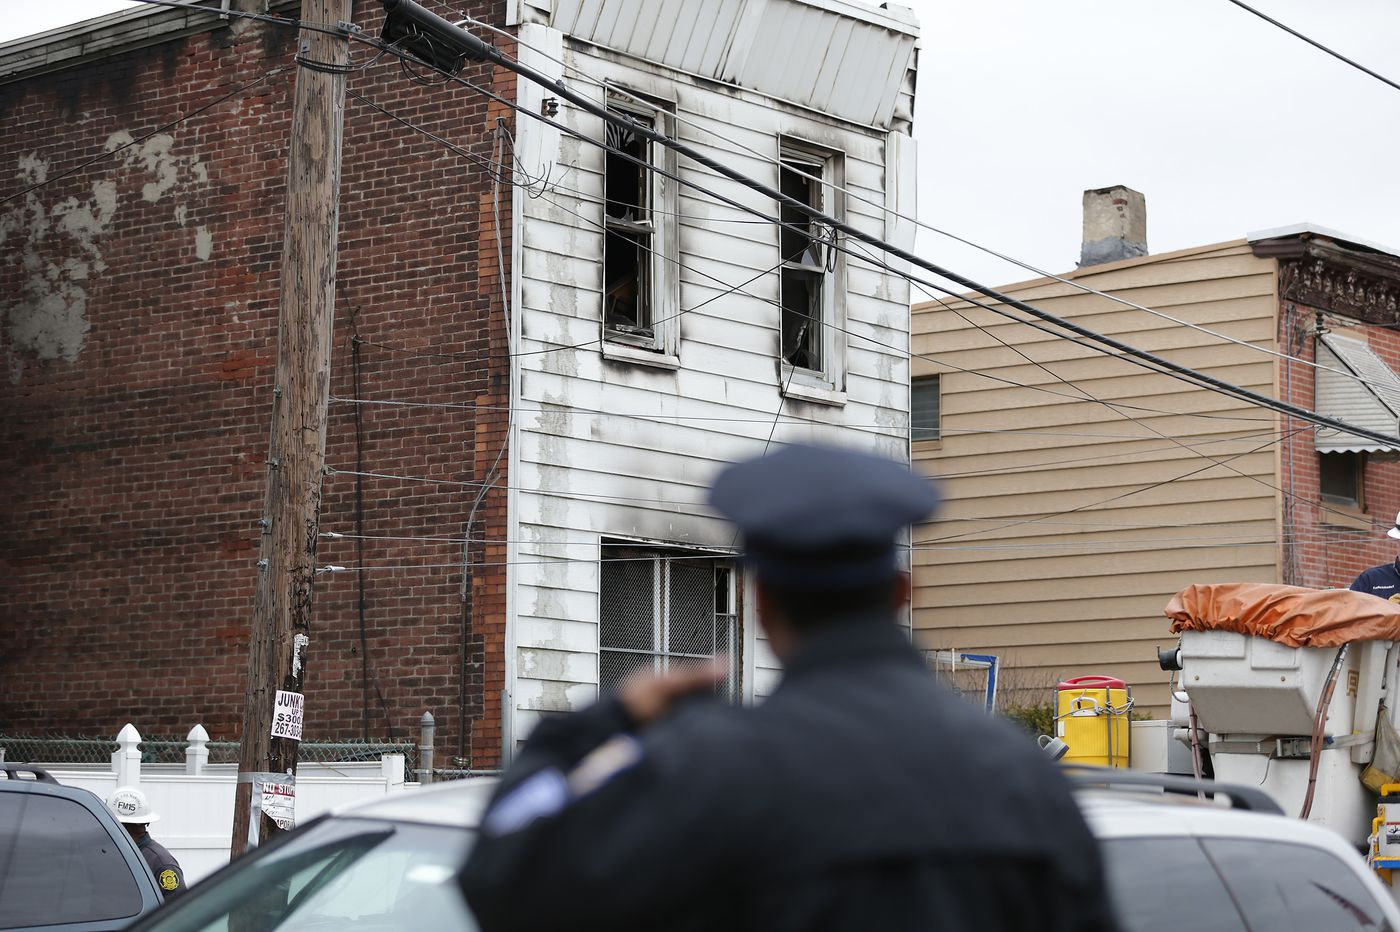 3 dead in Kensington rowhouse fire